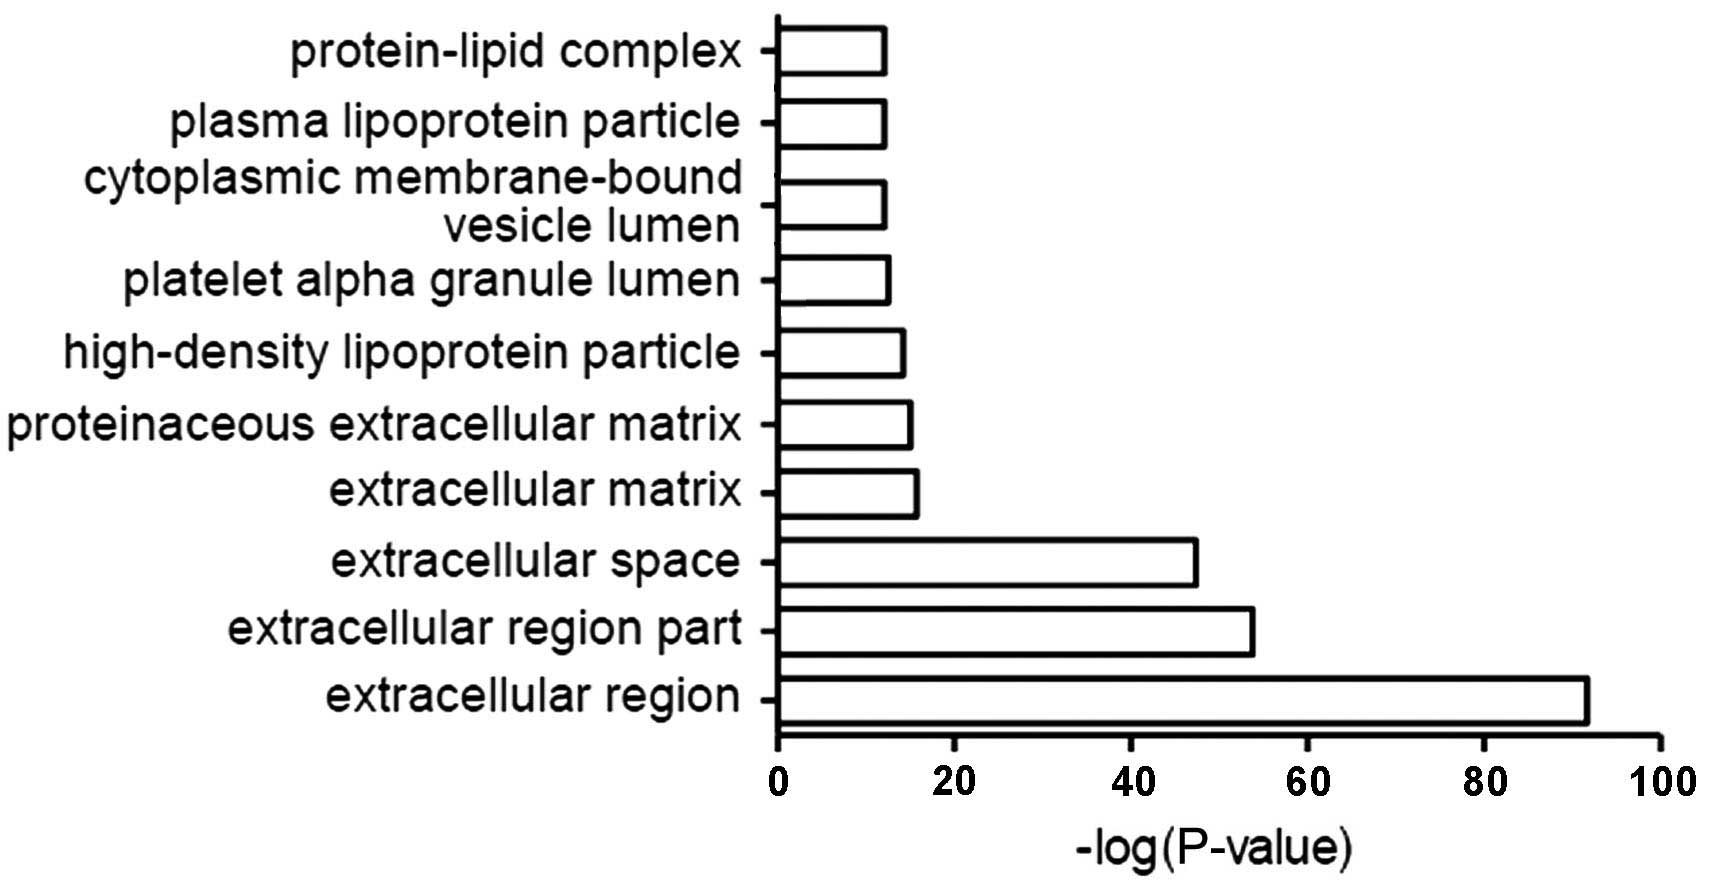 an analysis of amyotropic lateral sclerosis Amyotrophic lateral sclerosis (als) clinical research trials amyotrophic cytokinetics (cy 4031): a phase 3, open-label extension study of tirasemtiv for patients with amyotrophic lateral sclerosis (als) who completed vitality-als analysis of transcriptional changes in blood samples from.